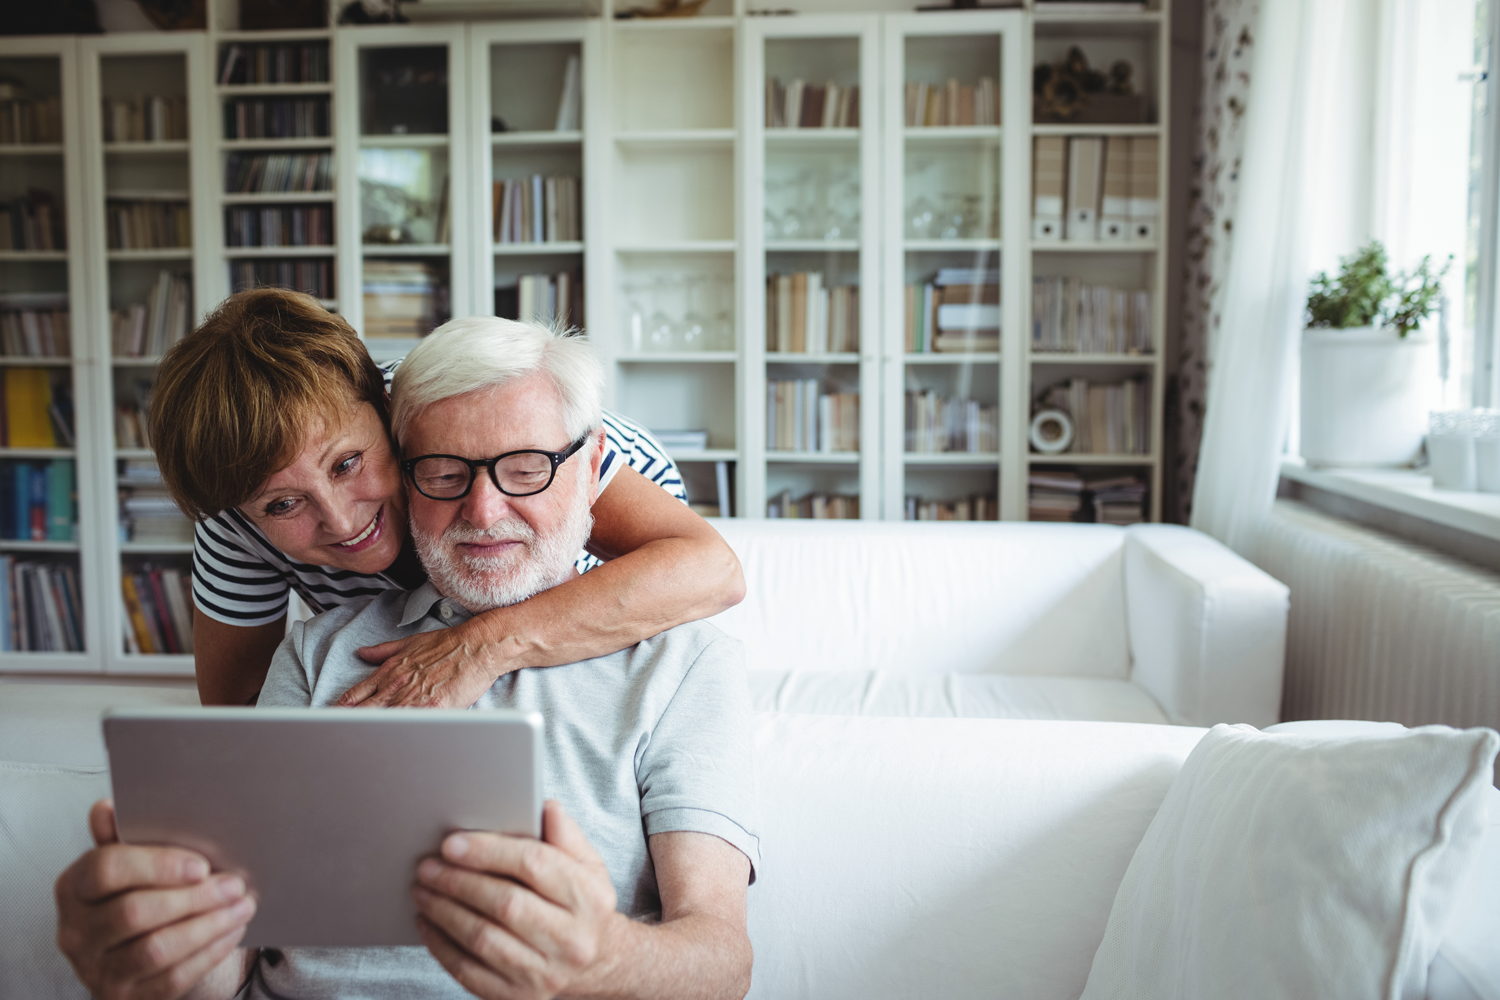 Happy-Couple-in-front-of-bookshelf-looking-at-laptop-smiling